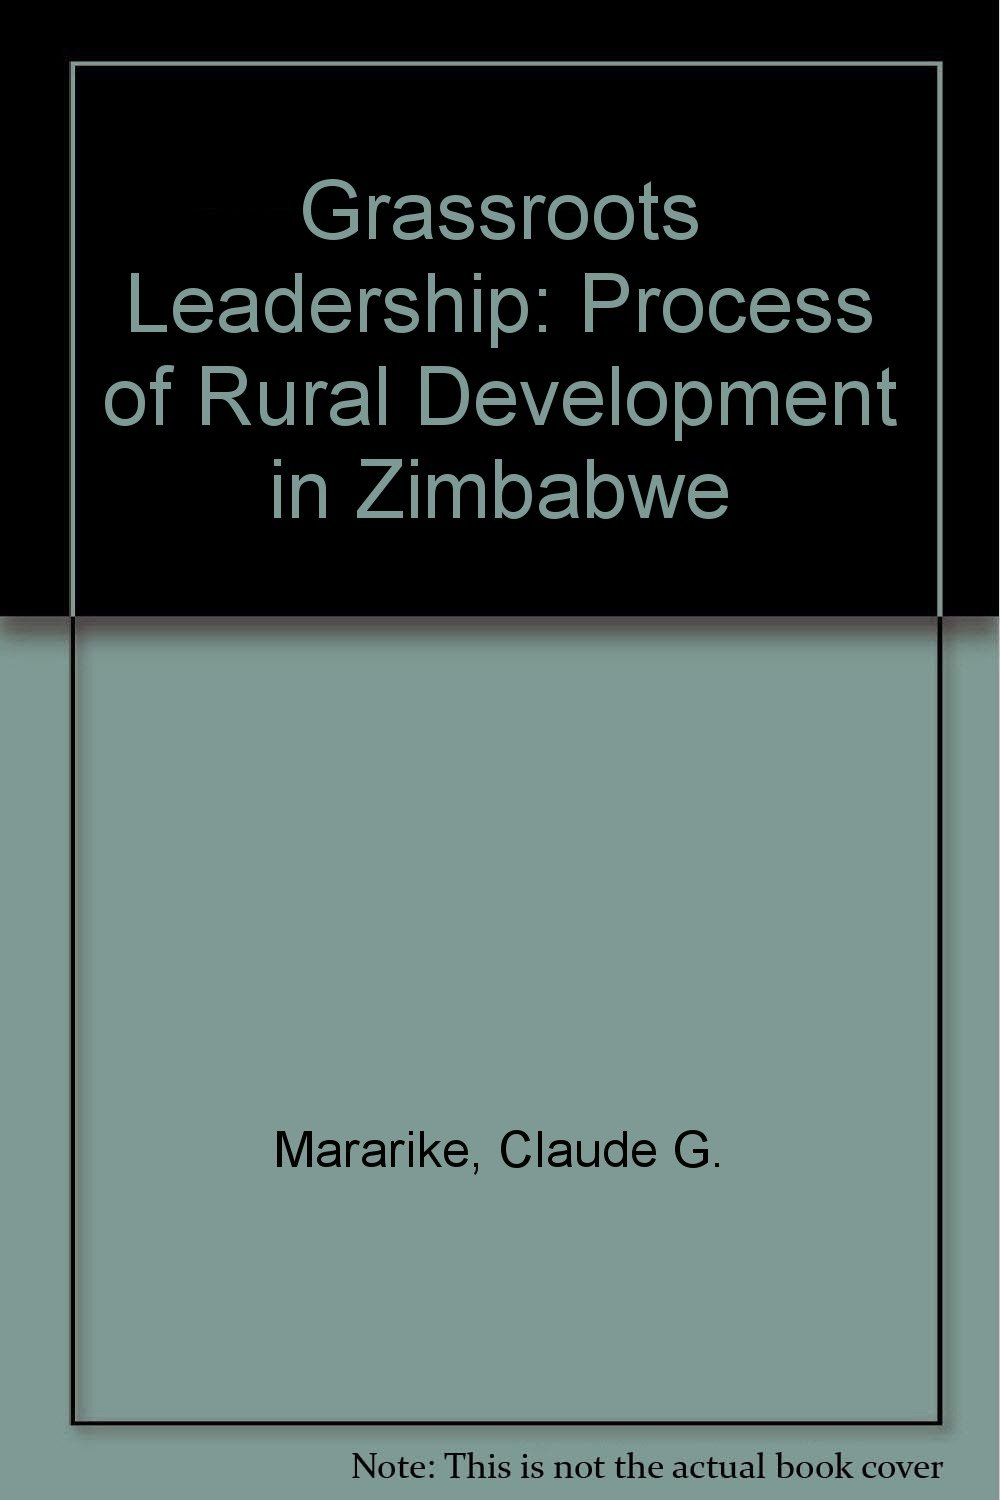 Grassroots leadership: The process of rural development in